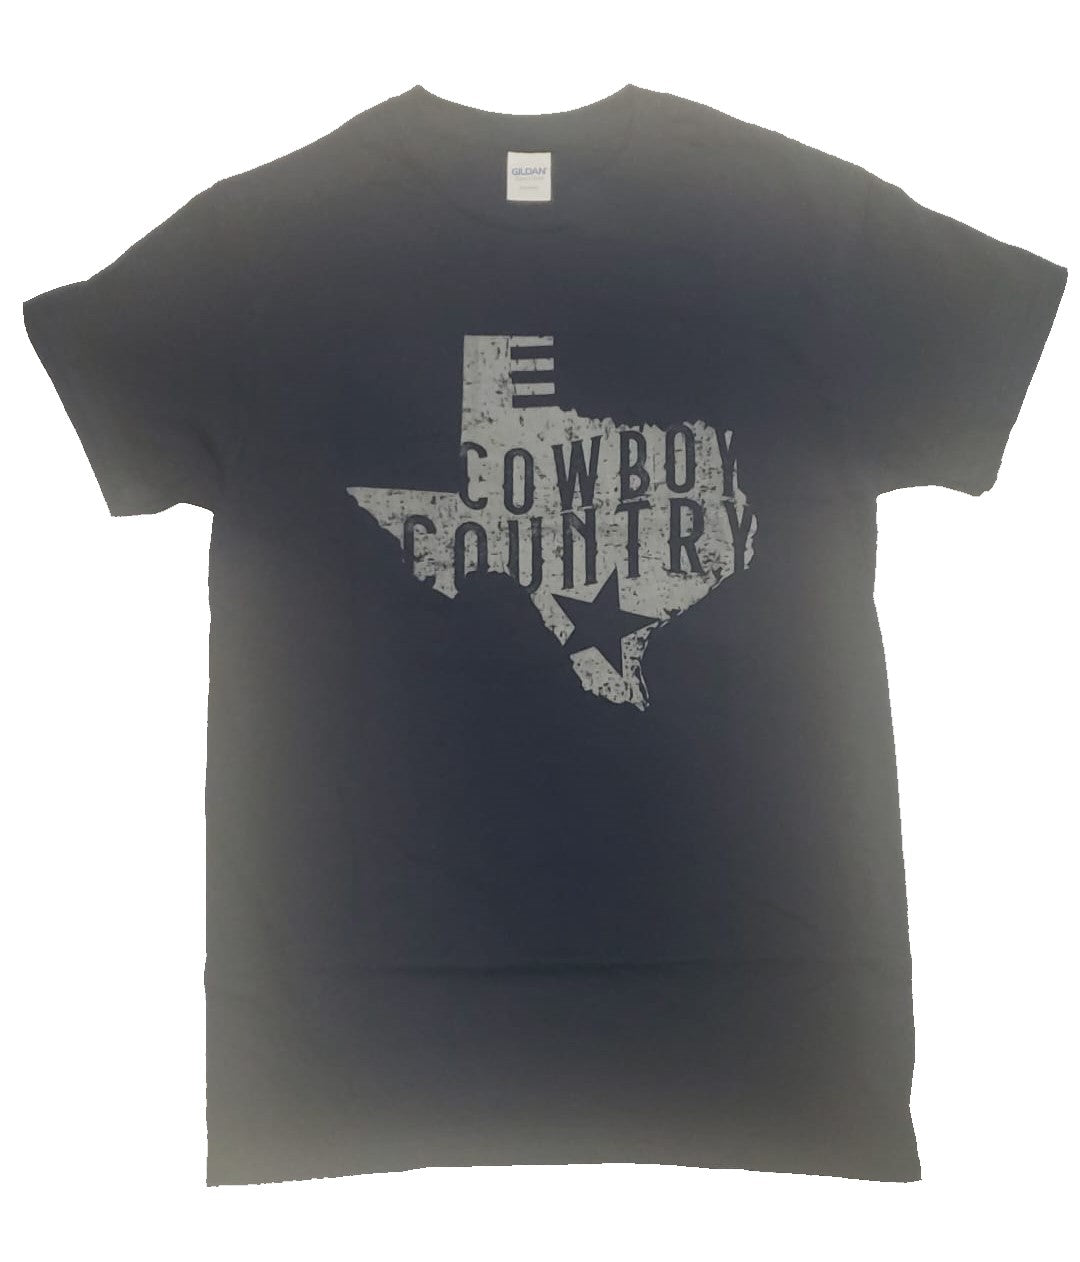 Dallas Cowboys Cowboy State Country T-Shirt